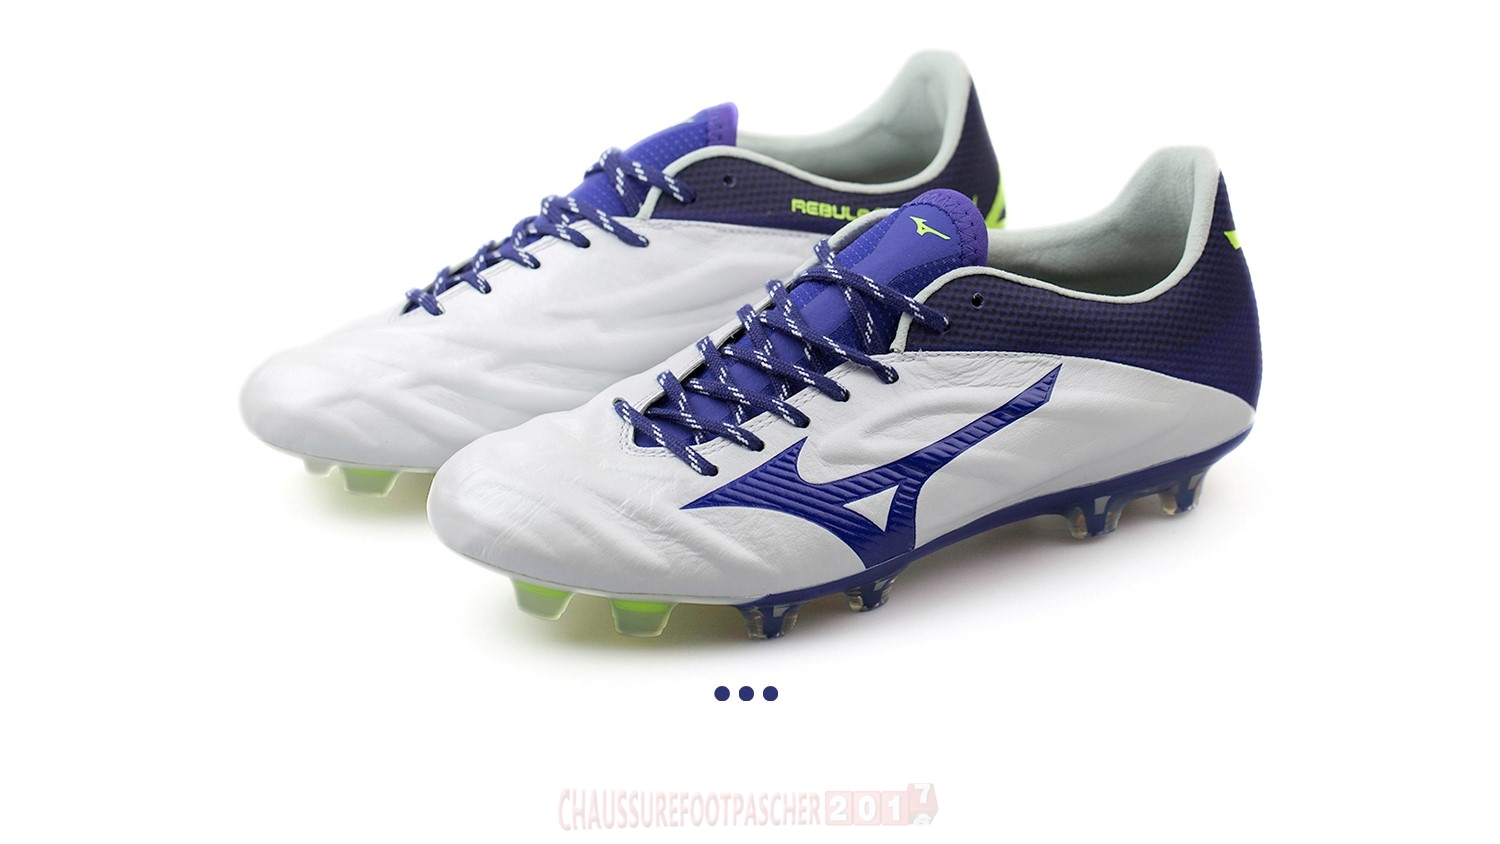 "Mizuno Chaussure De Foot Rebula 2 V1 JAPAN ""Legend Blue"" FG Blanc"